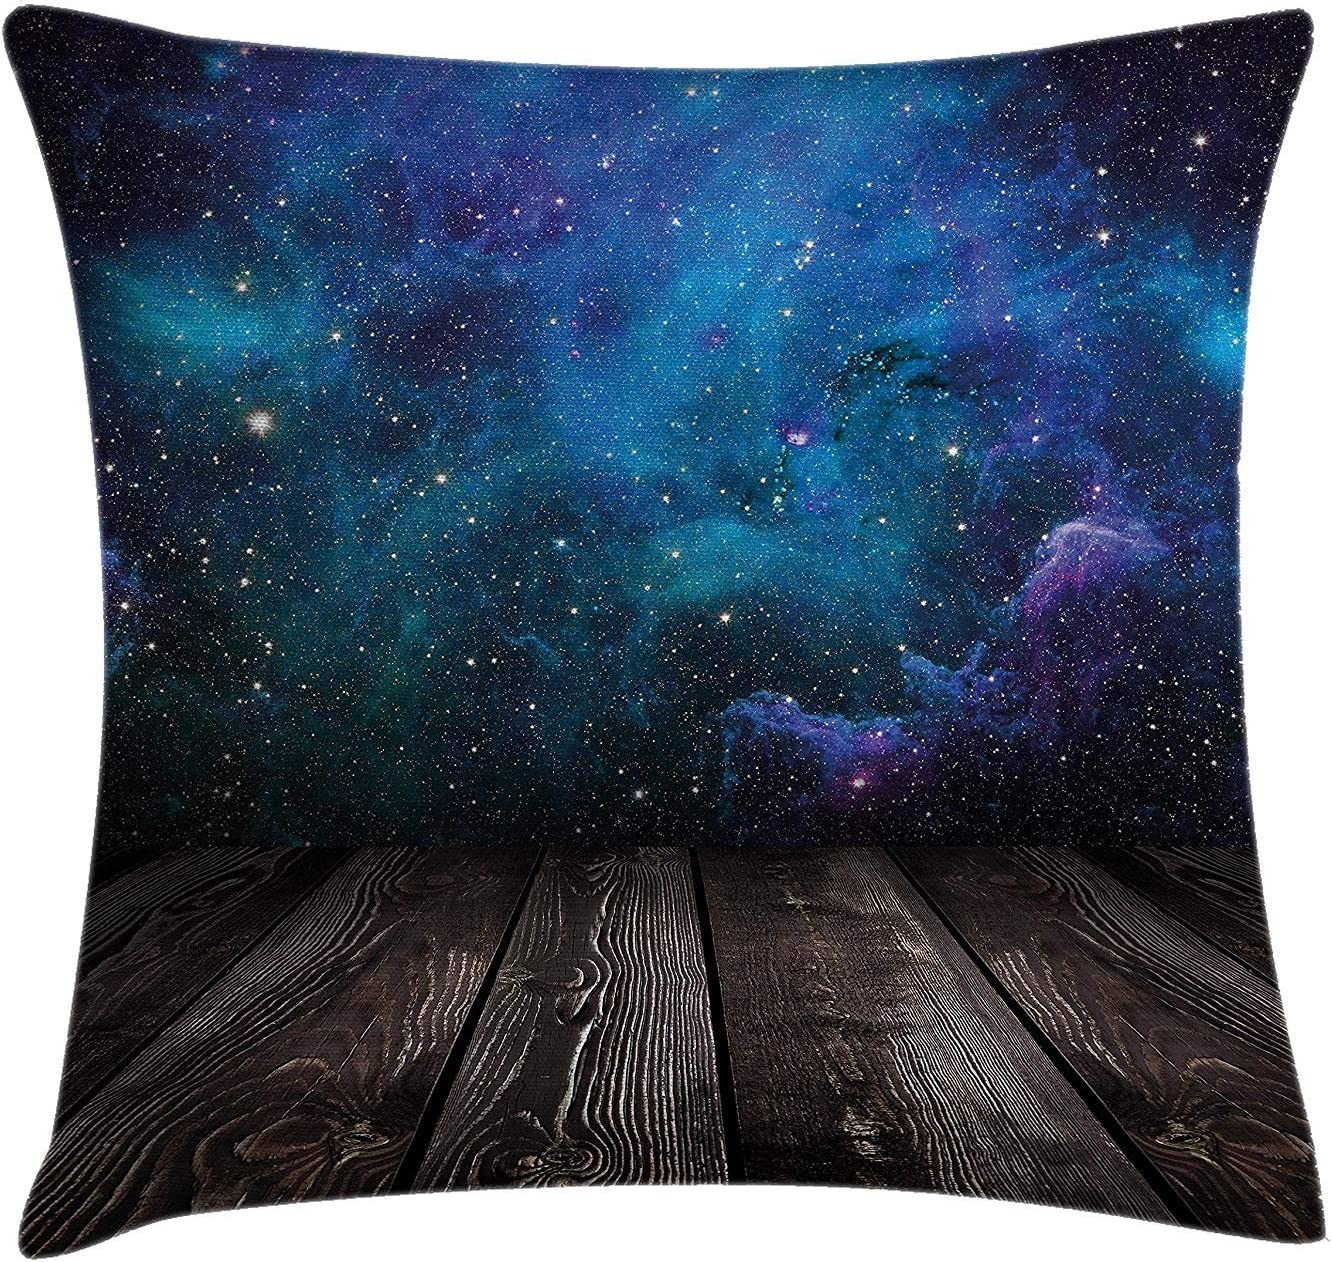 Galaxy Throw Pillow Cushion Cover, Outer Space View from Rustic Wooden Deck of Blue Nebula Stars Magical Night, Decorative Square Accent Pillow Case, 18 X 18 Inches, Black Blue Brown Purple